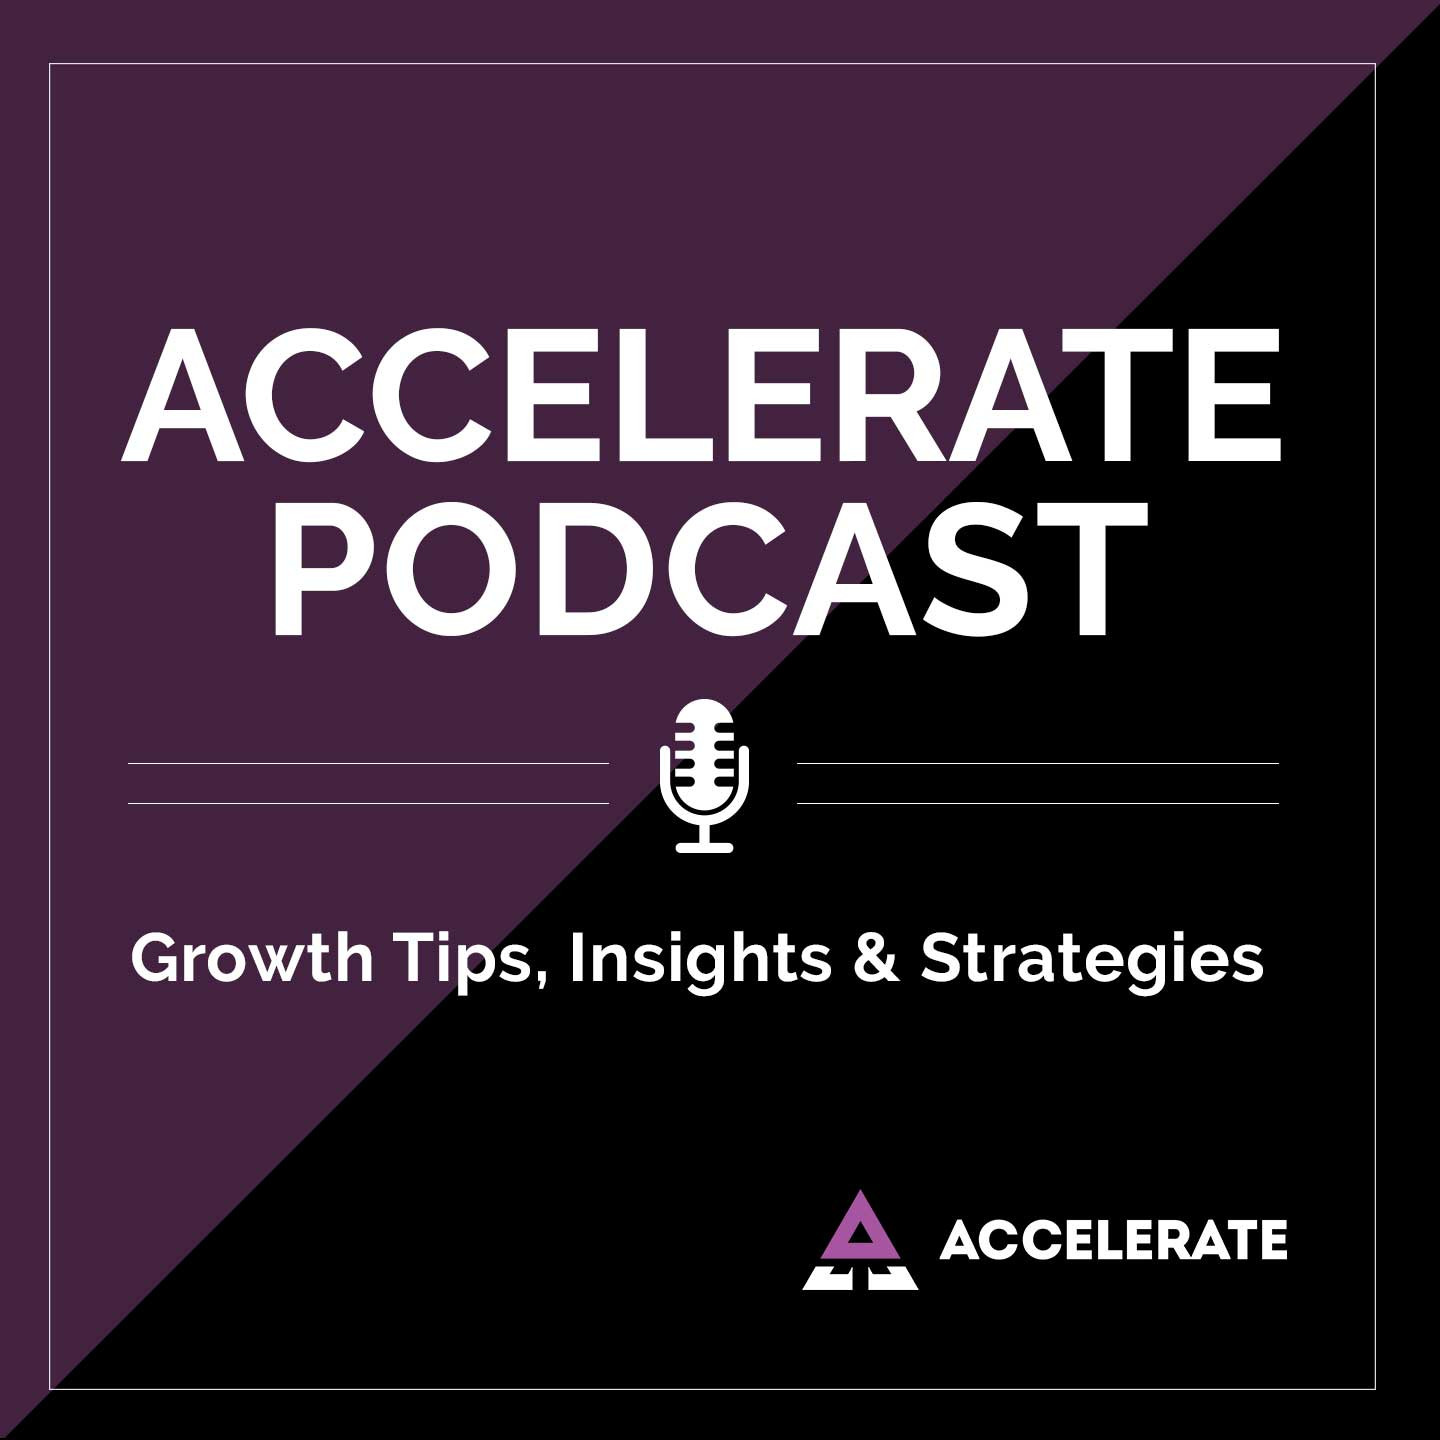 The Accelerate Podcast